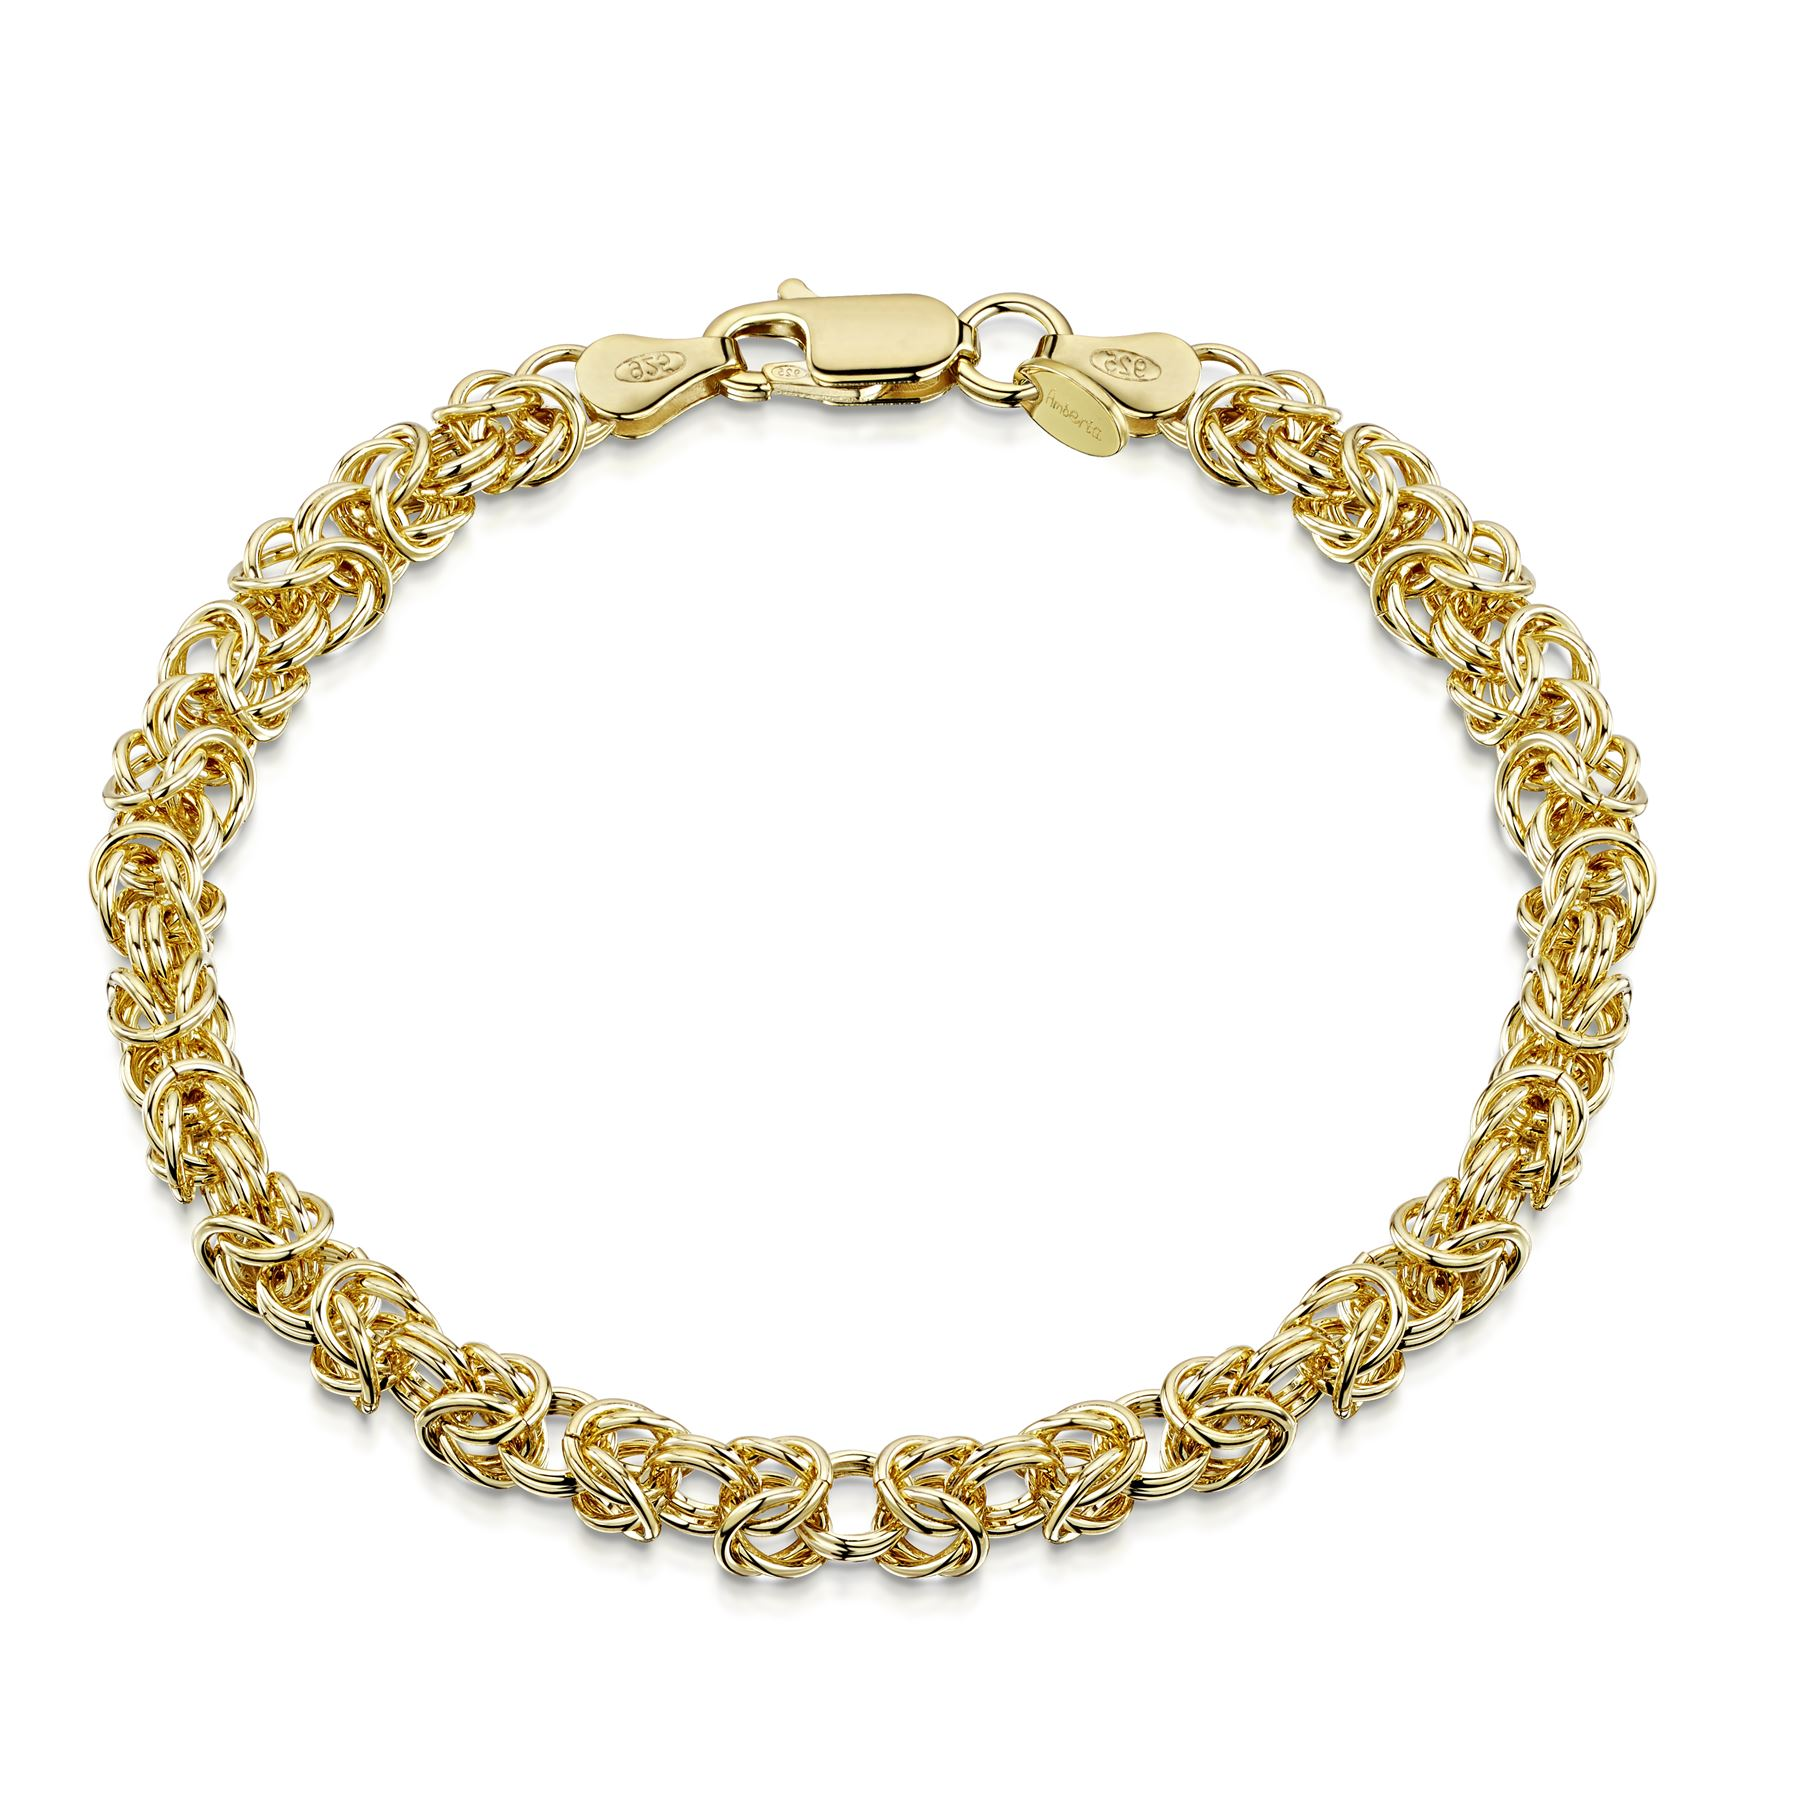 Amberta-Genuine-Real-925-Sterling-Silver-Chain-Bracelet-for-Women-from-Italy miniature 10